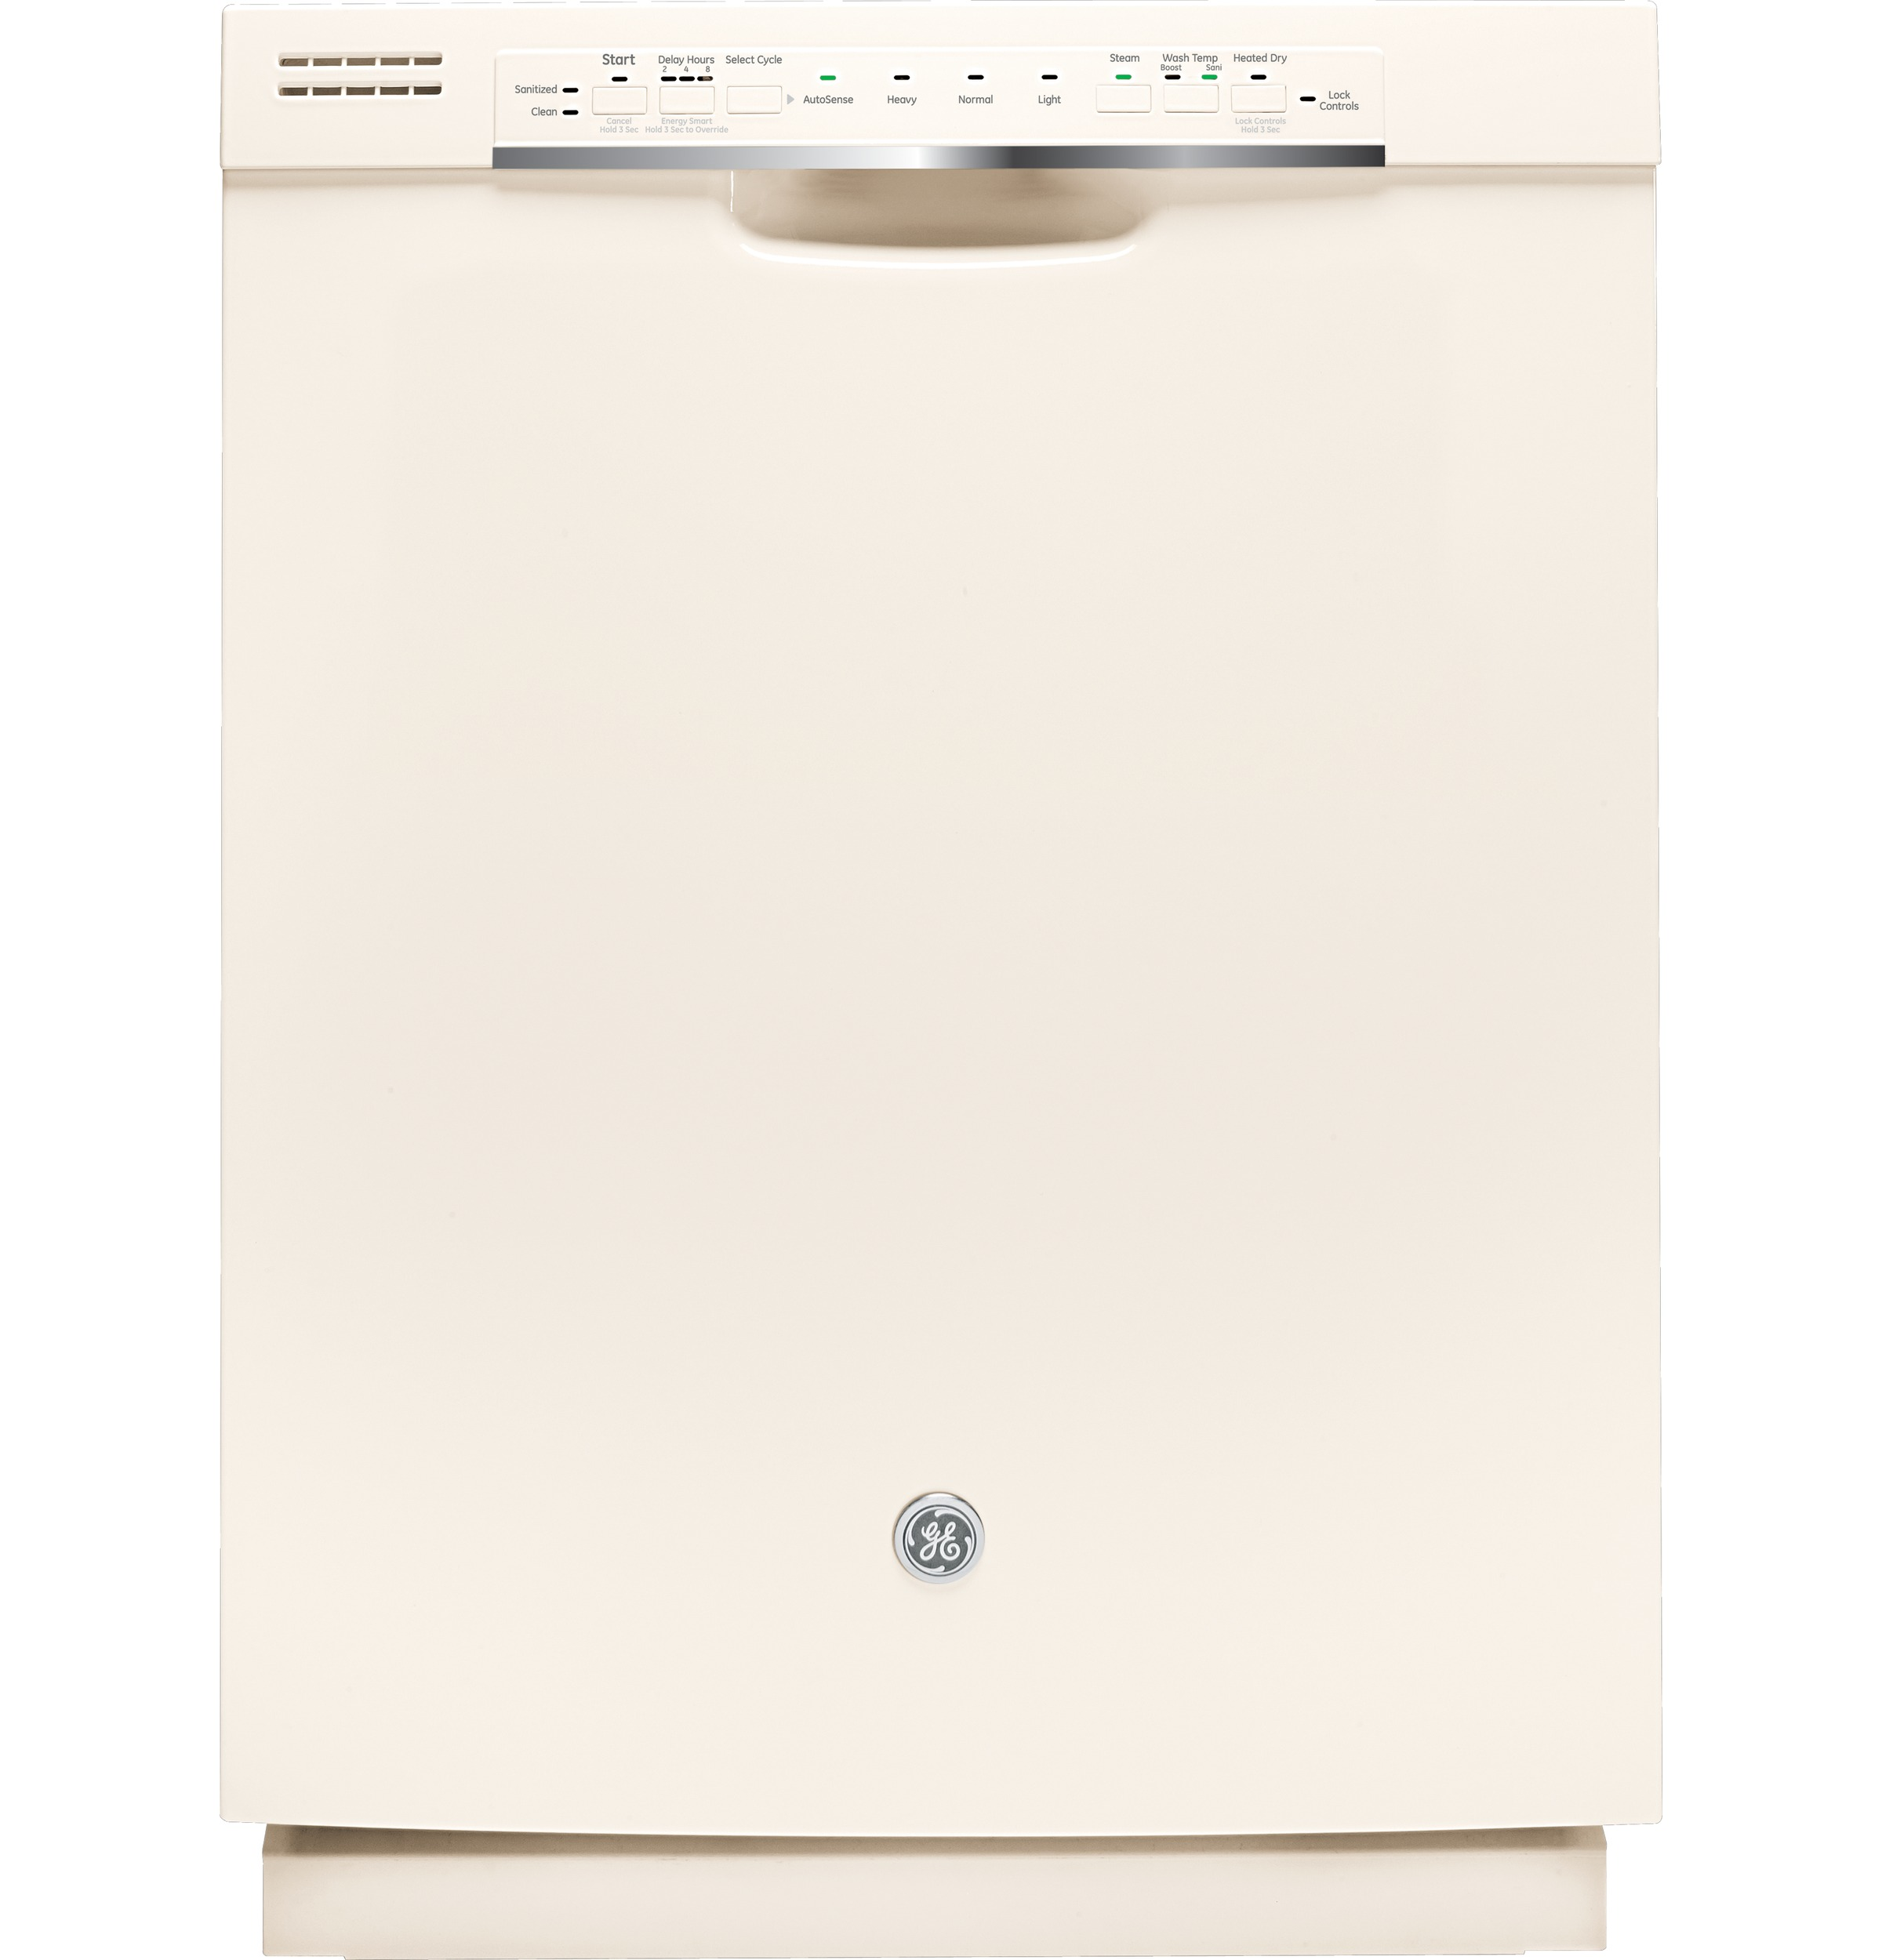 Ge dishwasher with front controls gdf520pgdcc ge appliances product image publicscrutiny Gallery